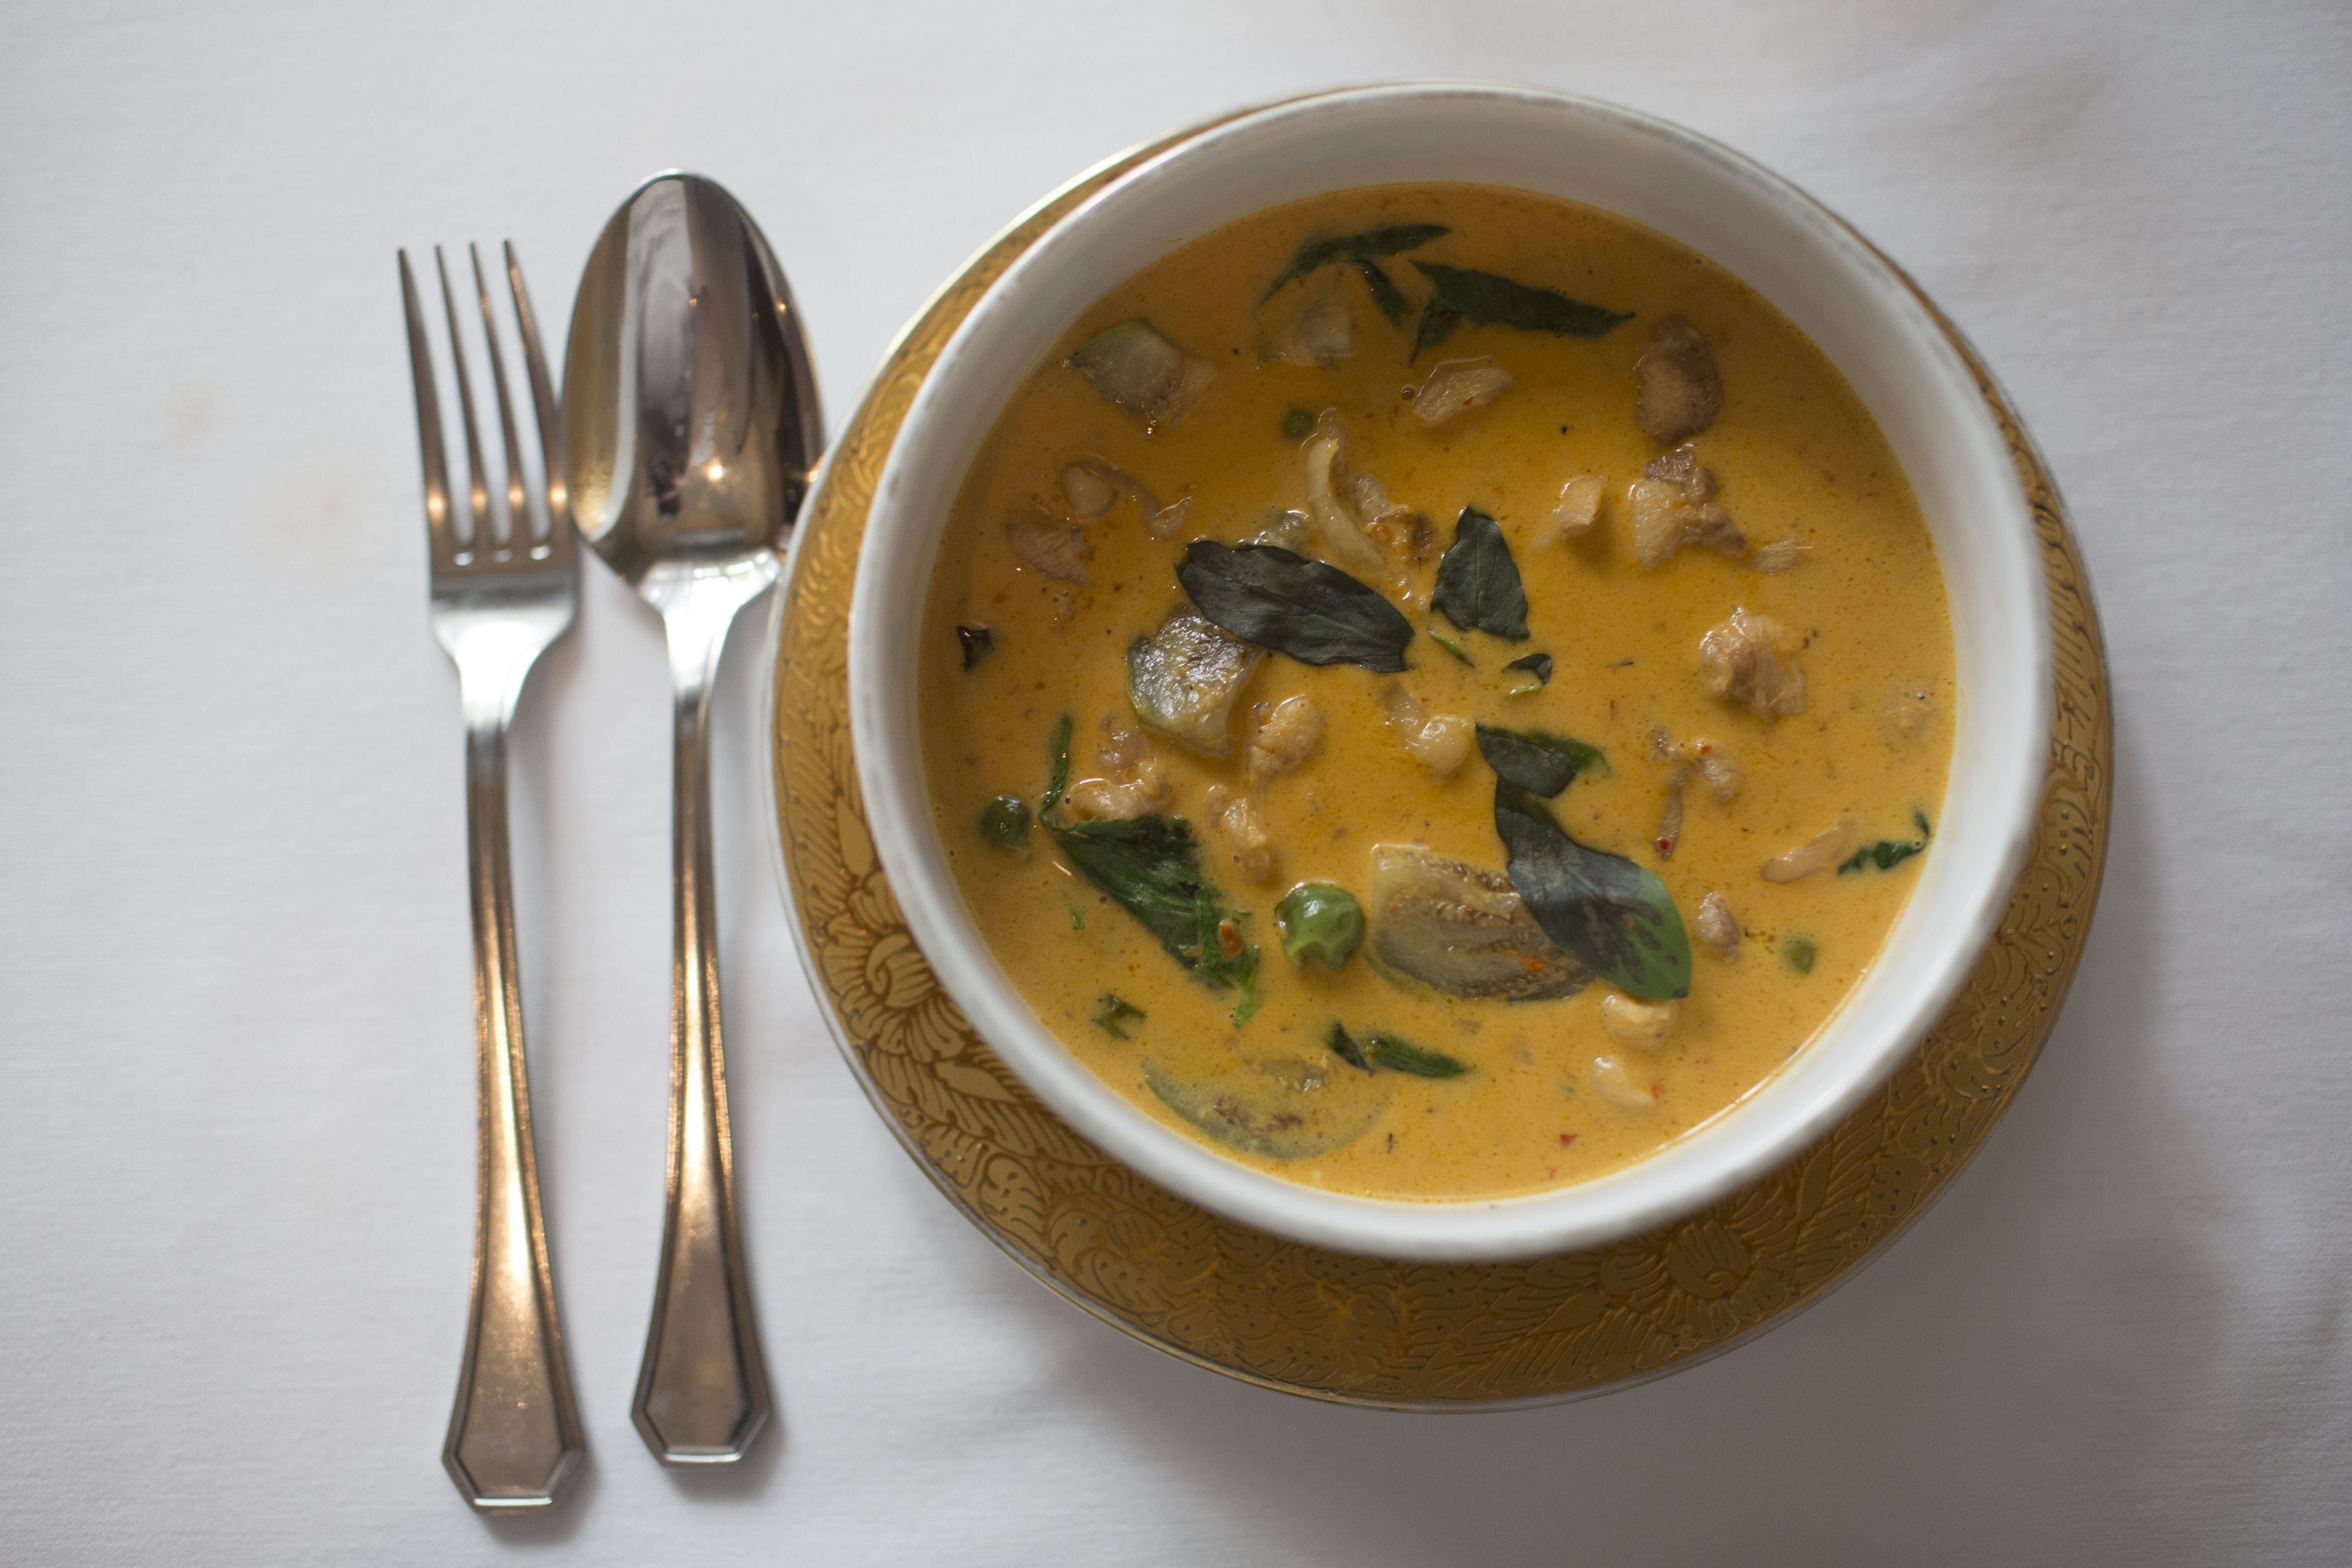 Thai red curry dish served in a restaurant